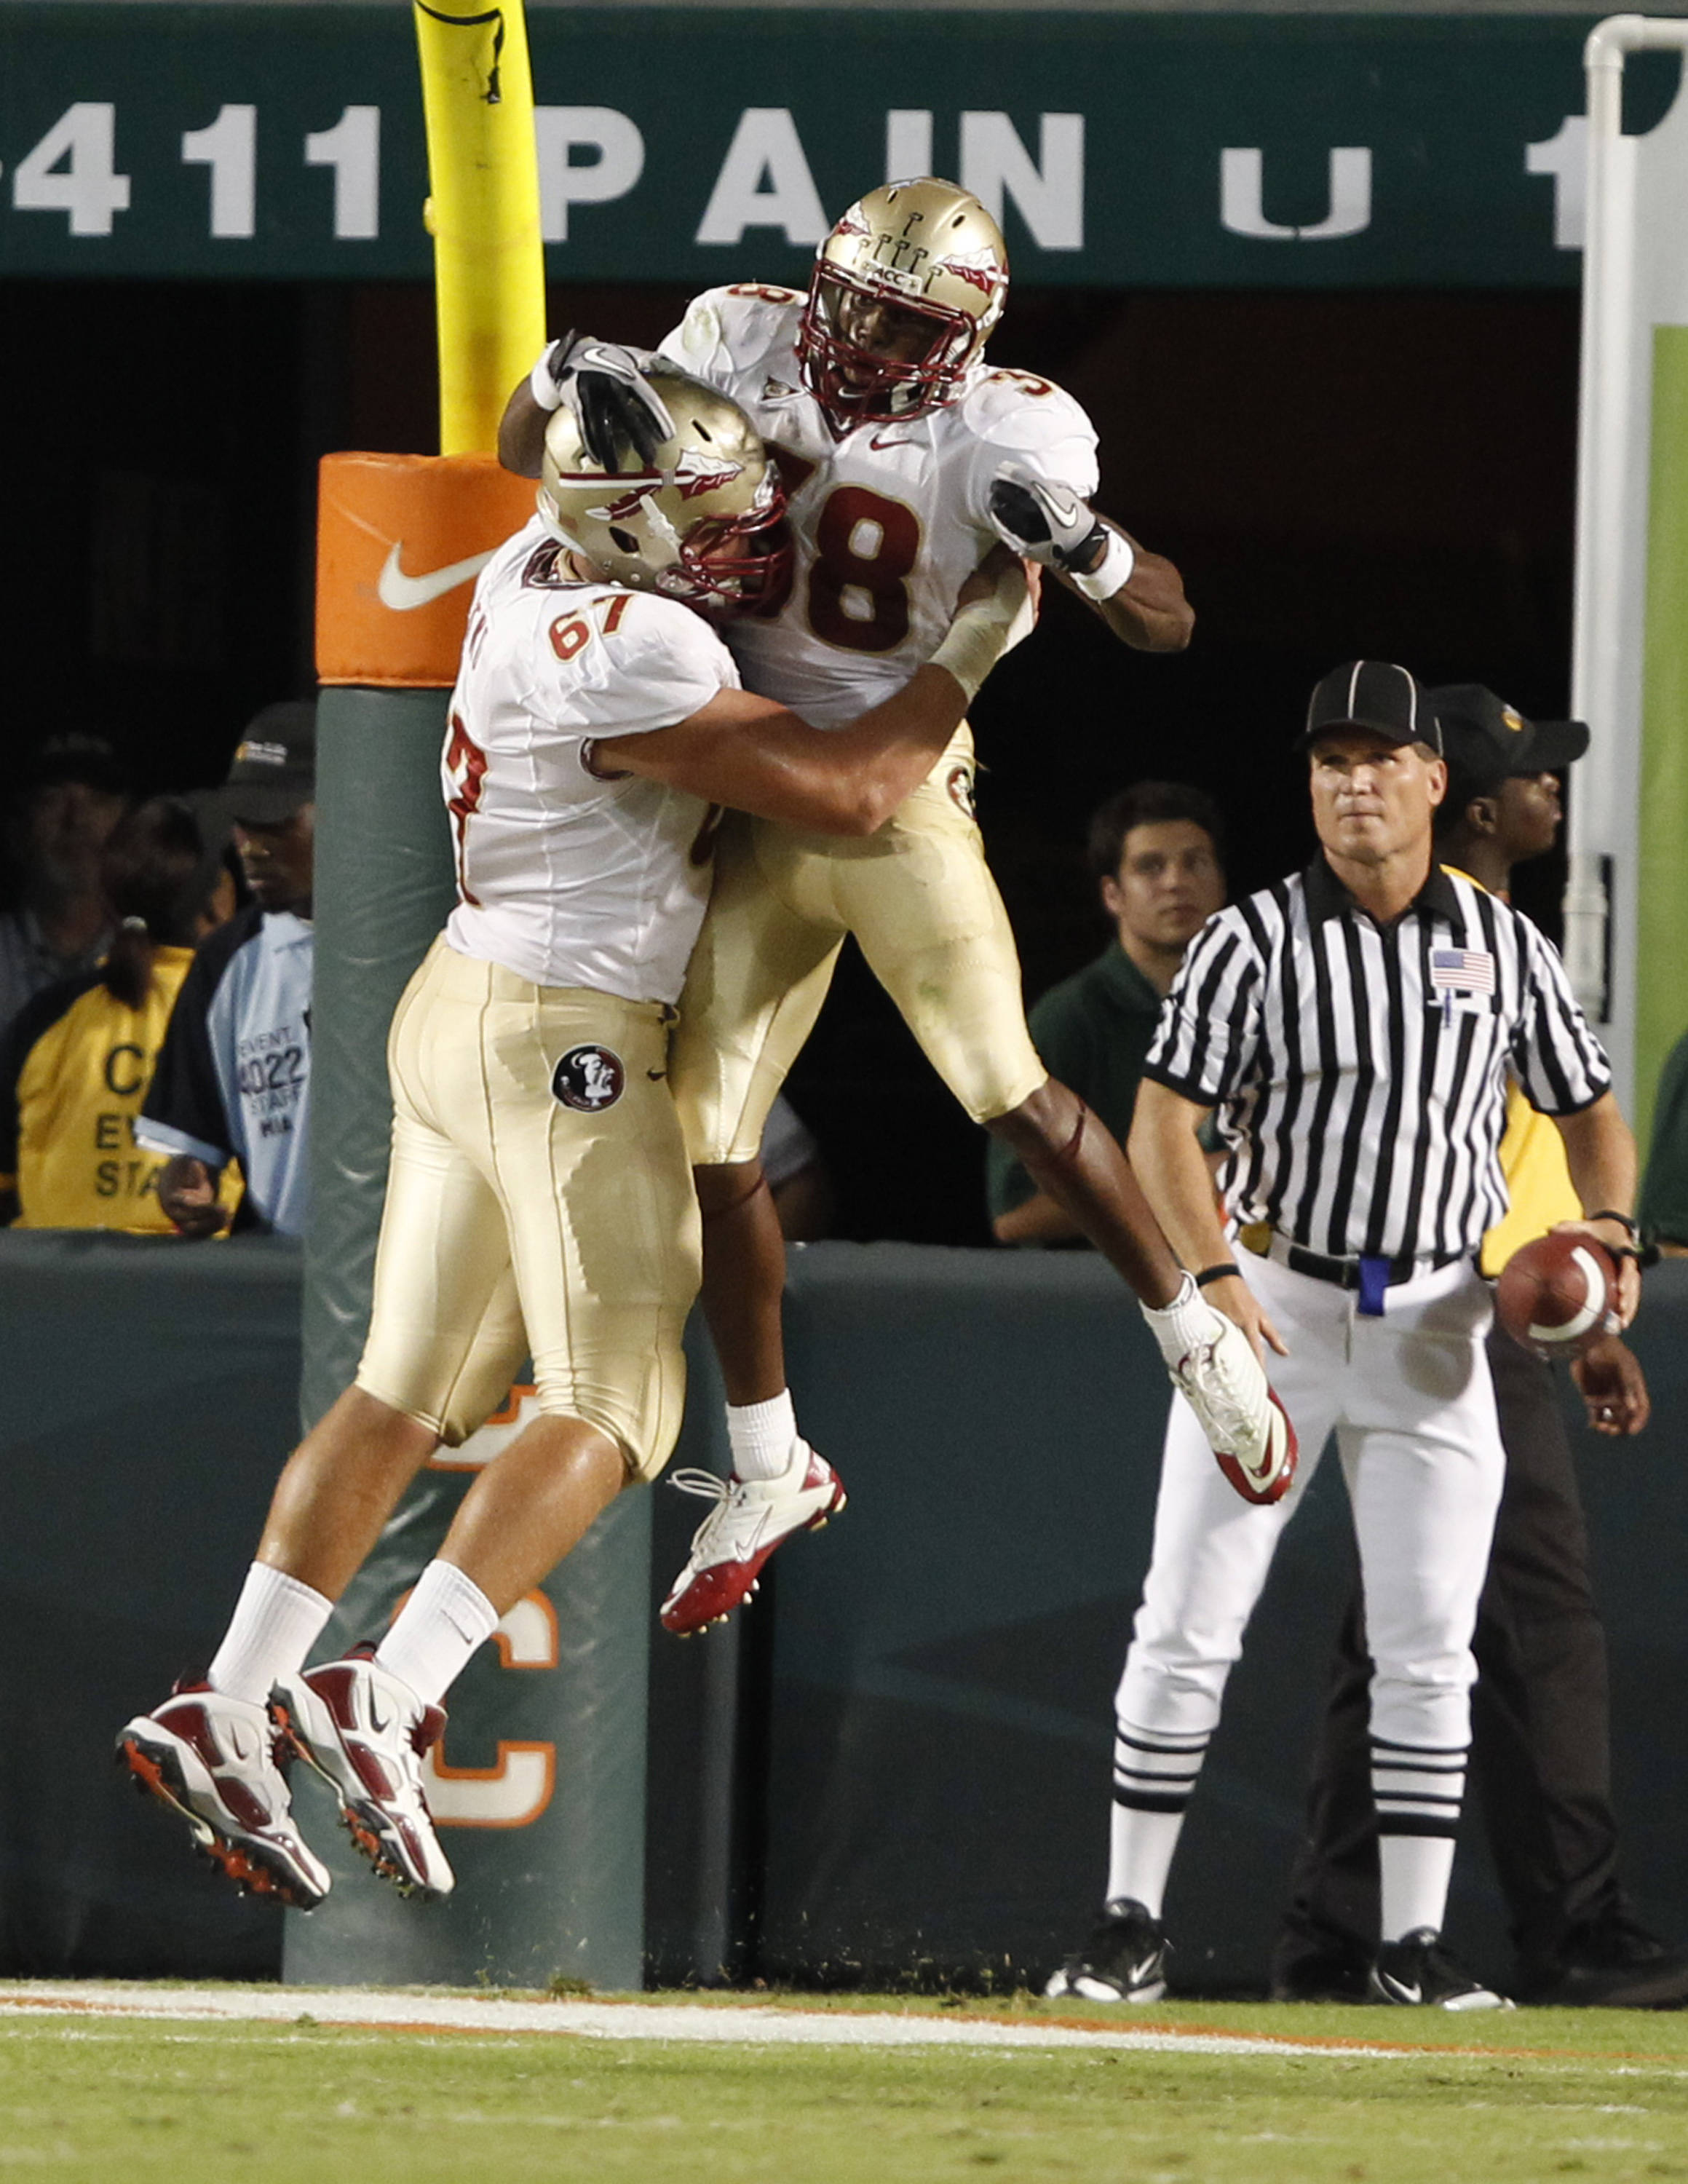 Florida State running back Jermaine Thomas celebrates with offensive tackle Andrew Datko after scoring a touchdown in the second quarter.